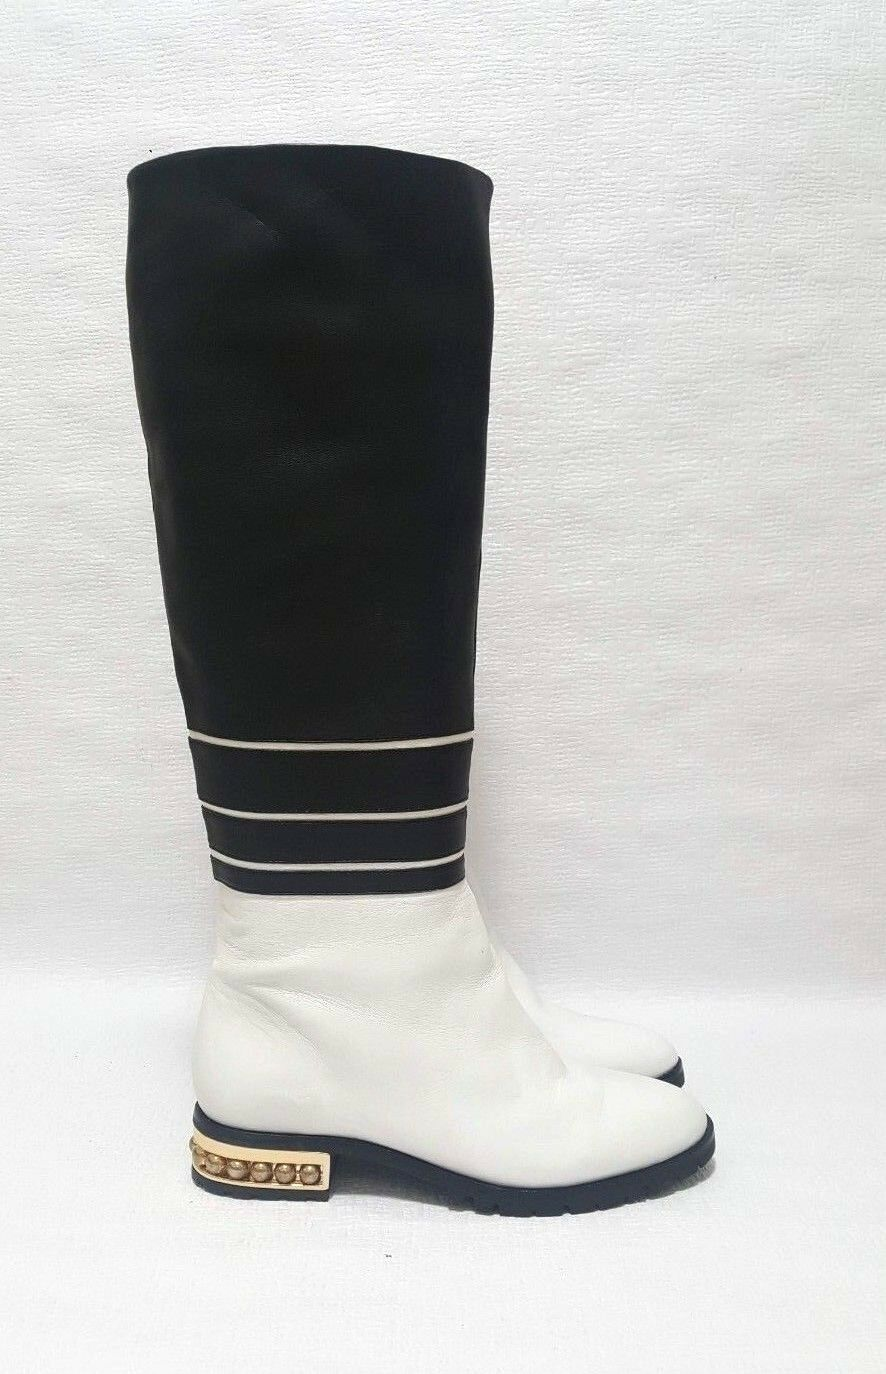 NEW RARE UNIQUE KARL LAGERFELD Black White Lambskin Leather  Boots SAMPLE Size 6